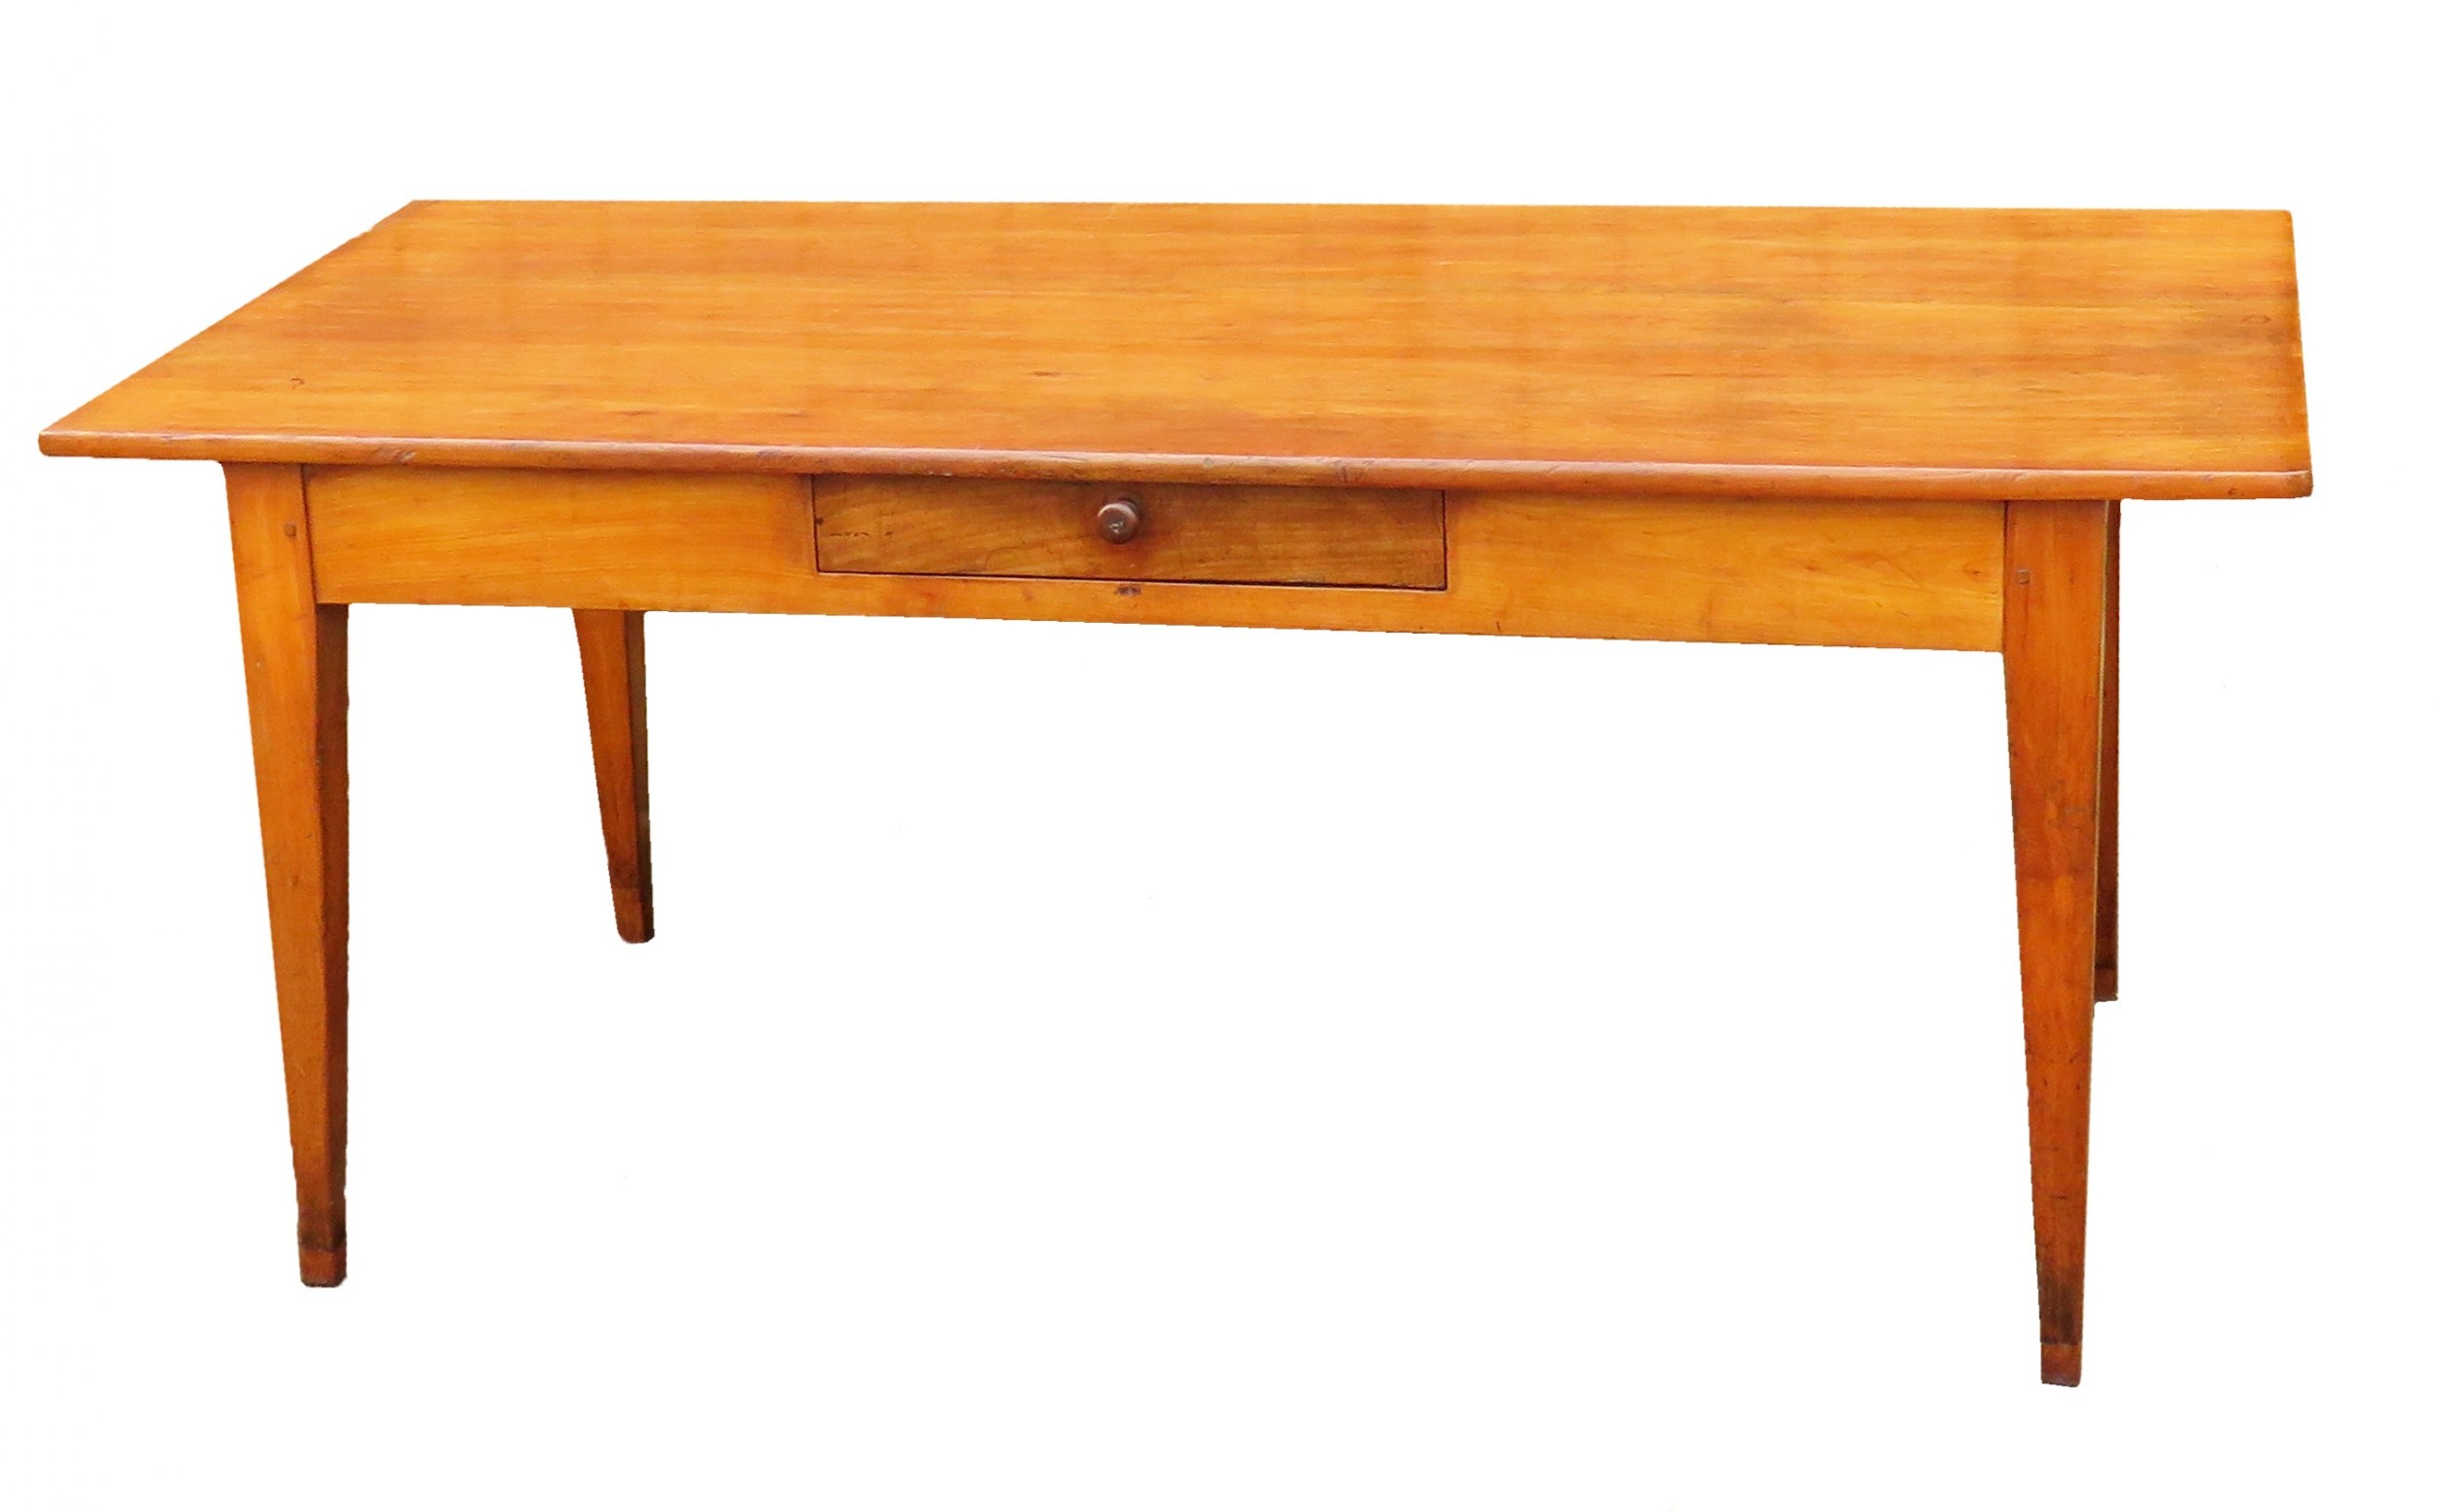 19th century french cherrywood farmhouse antique dining table